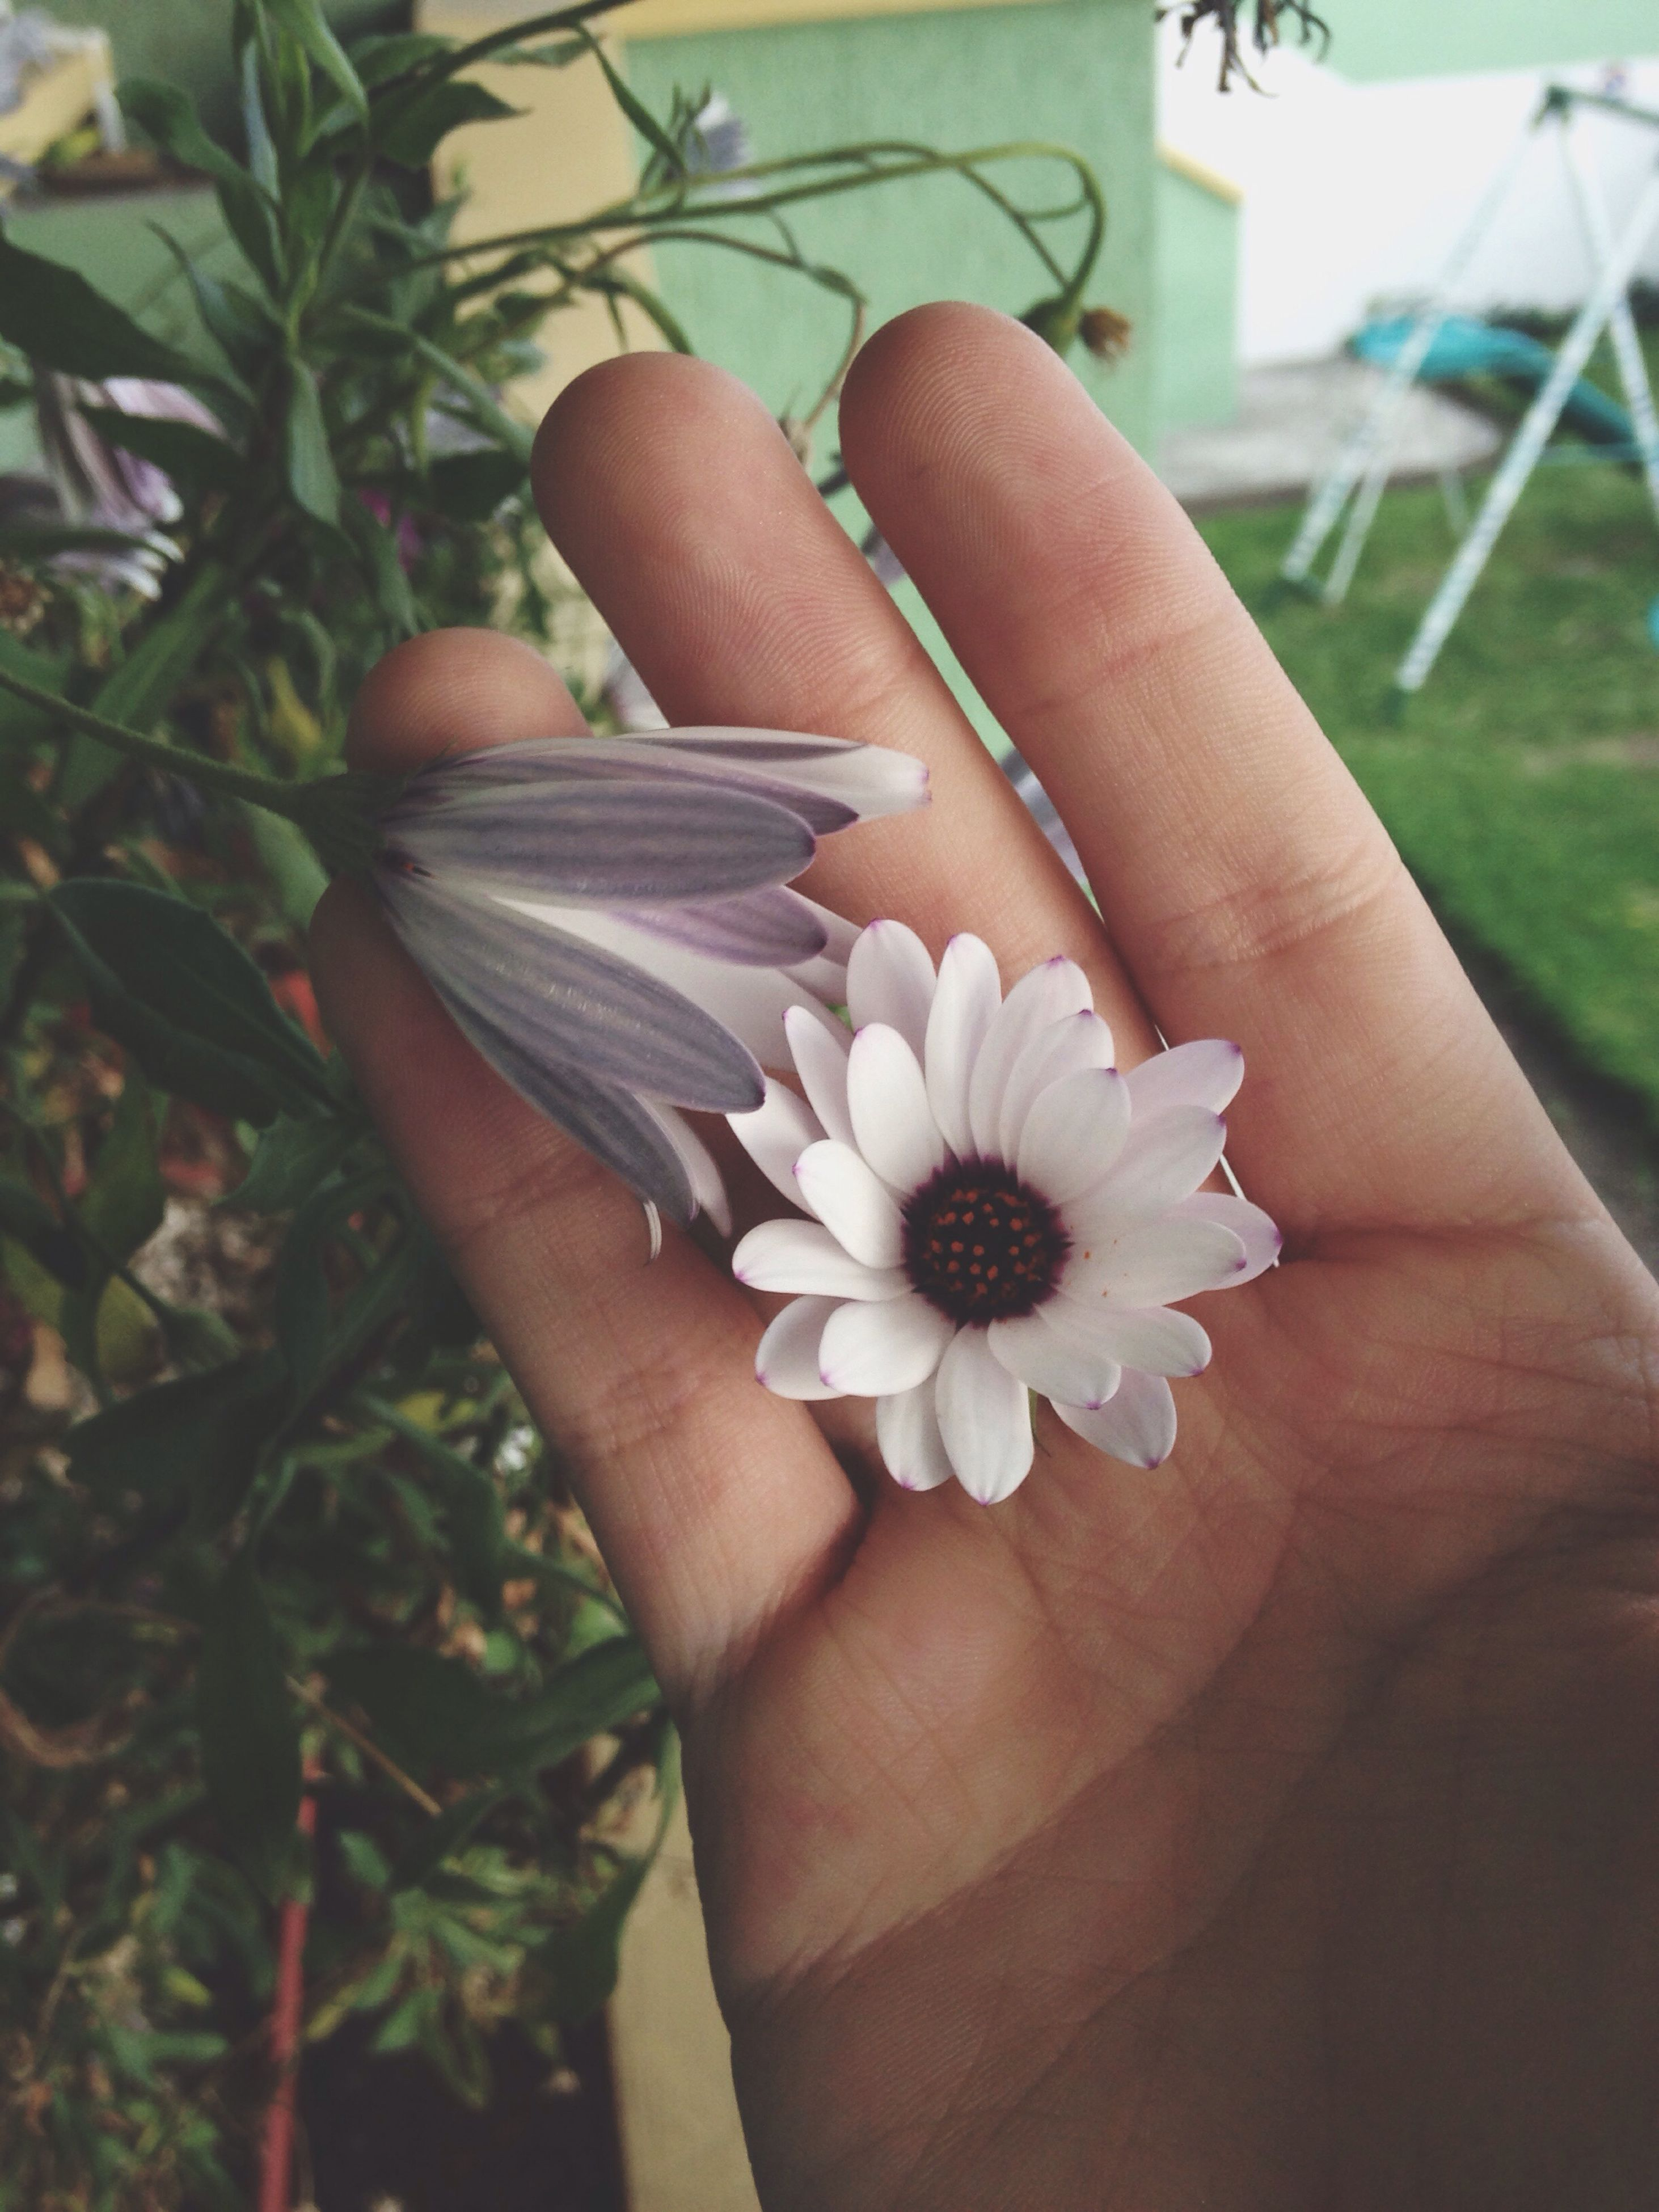 human hand, human body part, flower, human finger, personal perspective, one person, lifestyles, flower head, nature, plant, close-up, outdoors, fingernail, beauty in nature, nail polish, real people, day, people, freshness, adult, adults only